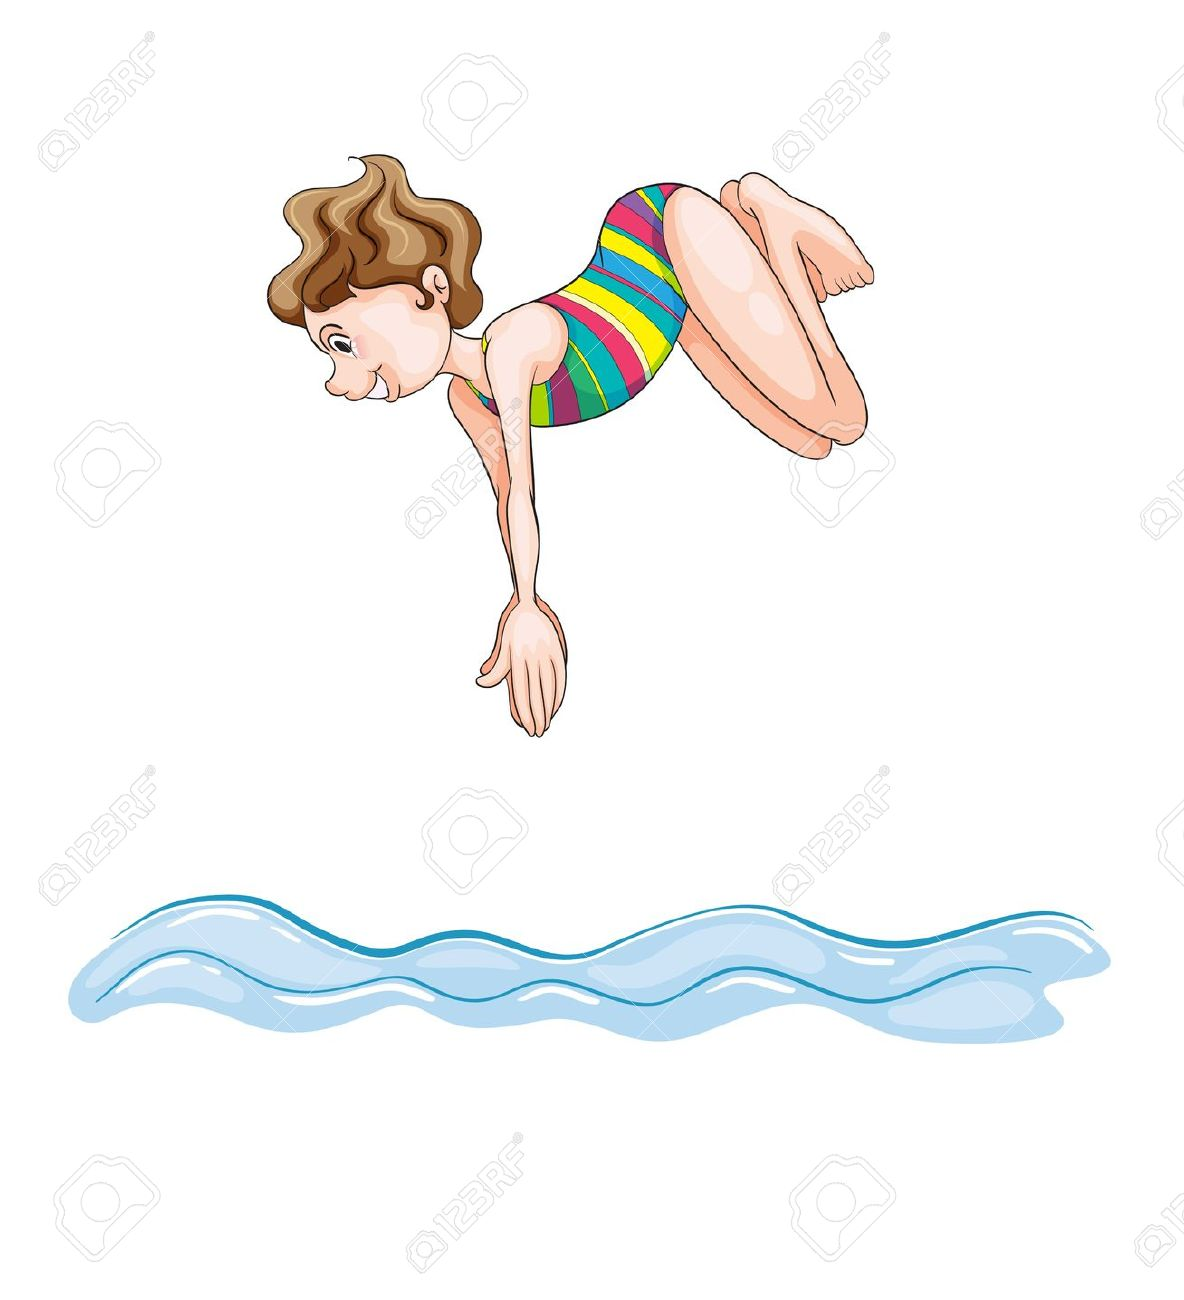 Jump into water clipart.